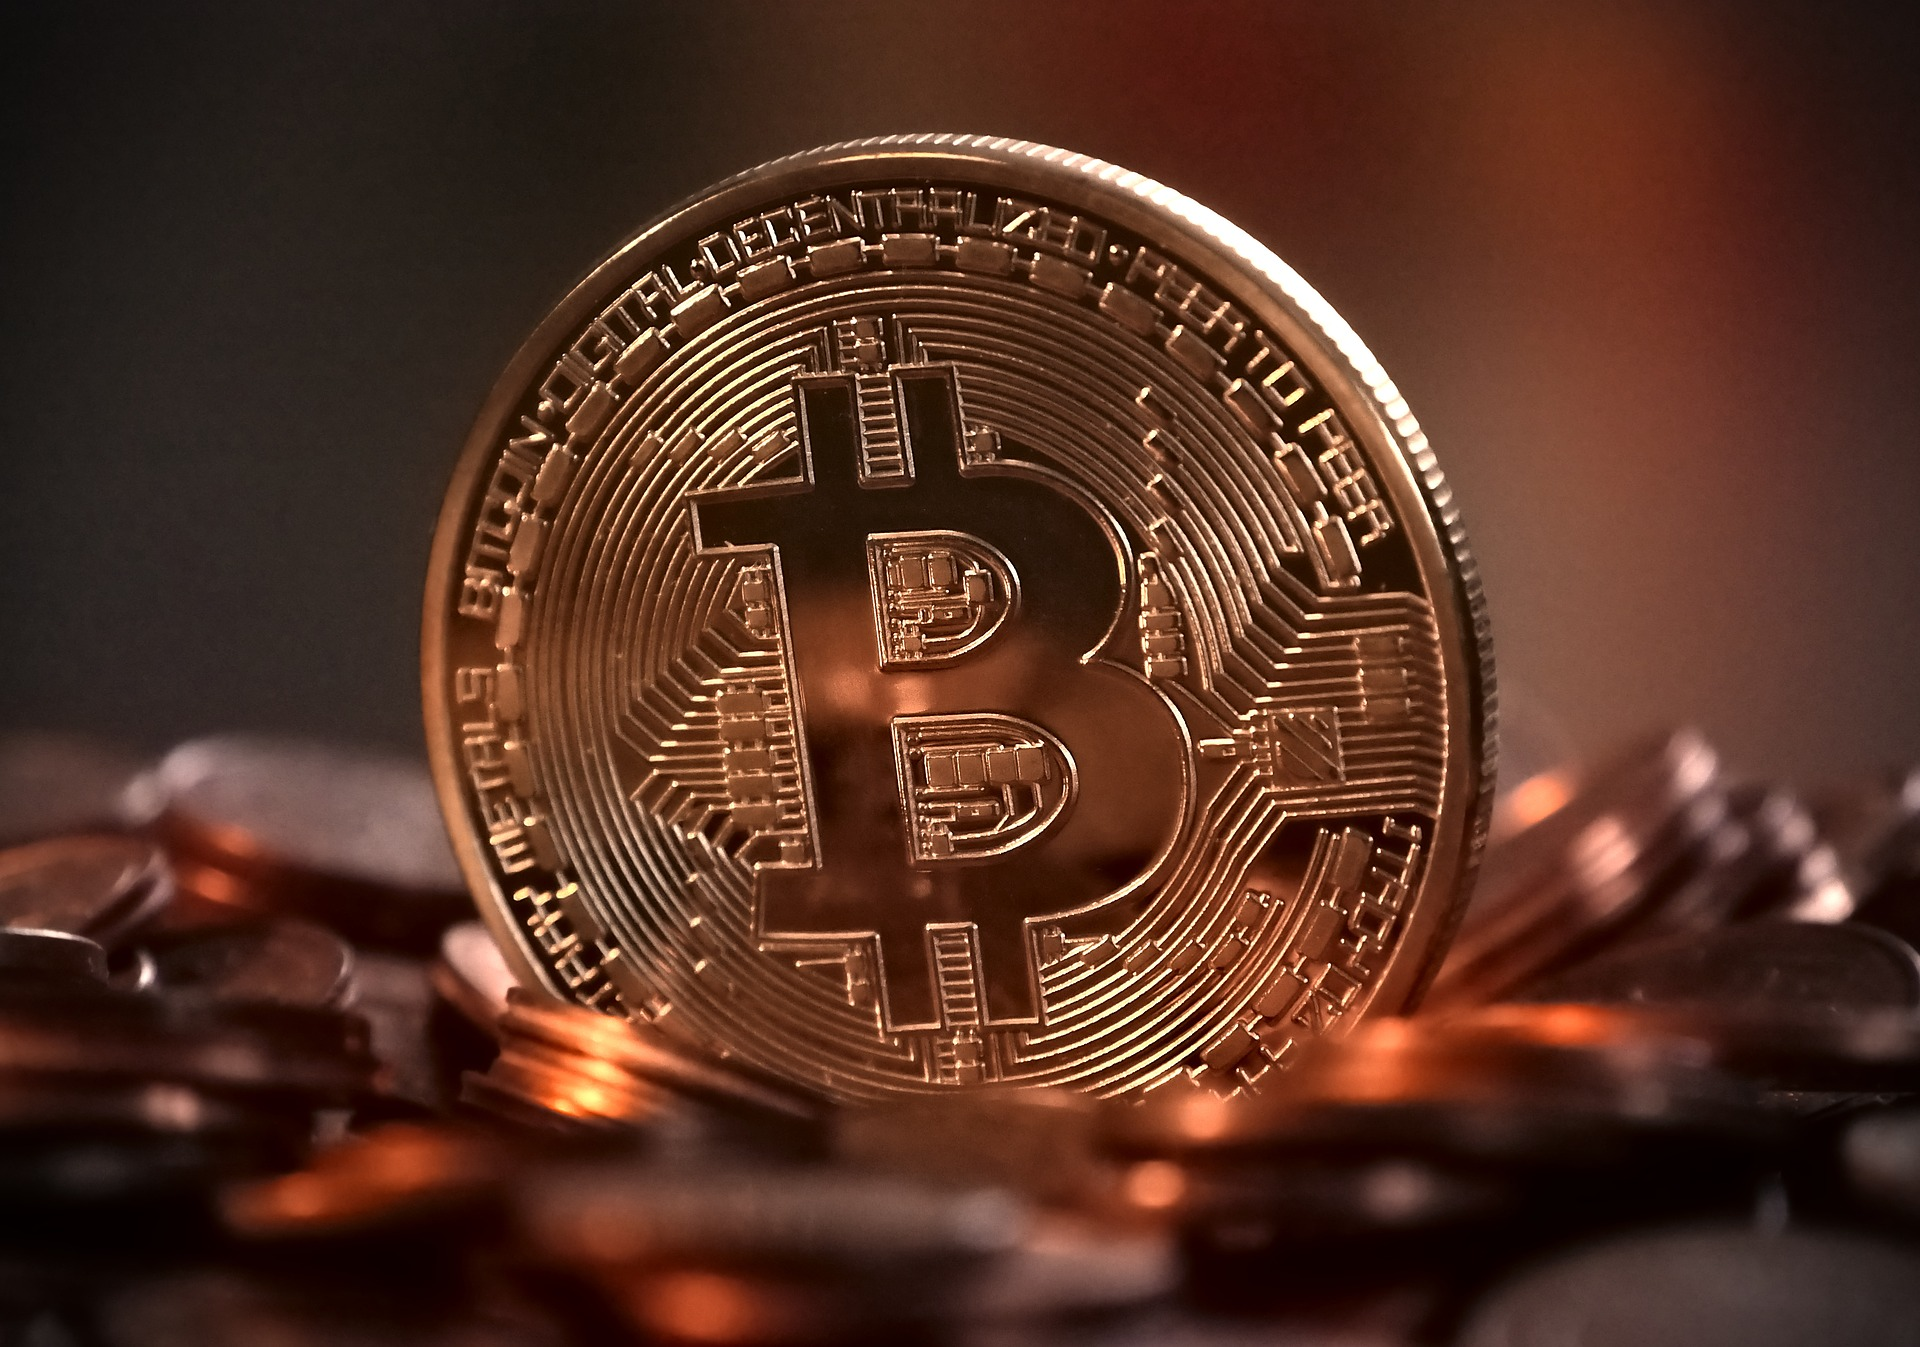 What Are The Major Benefits Of Using Cryptocurrencies?